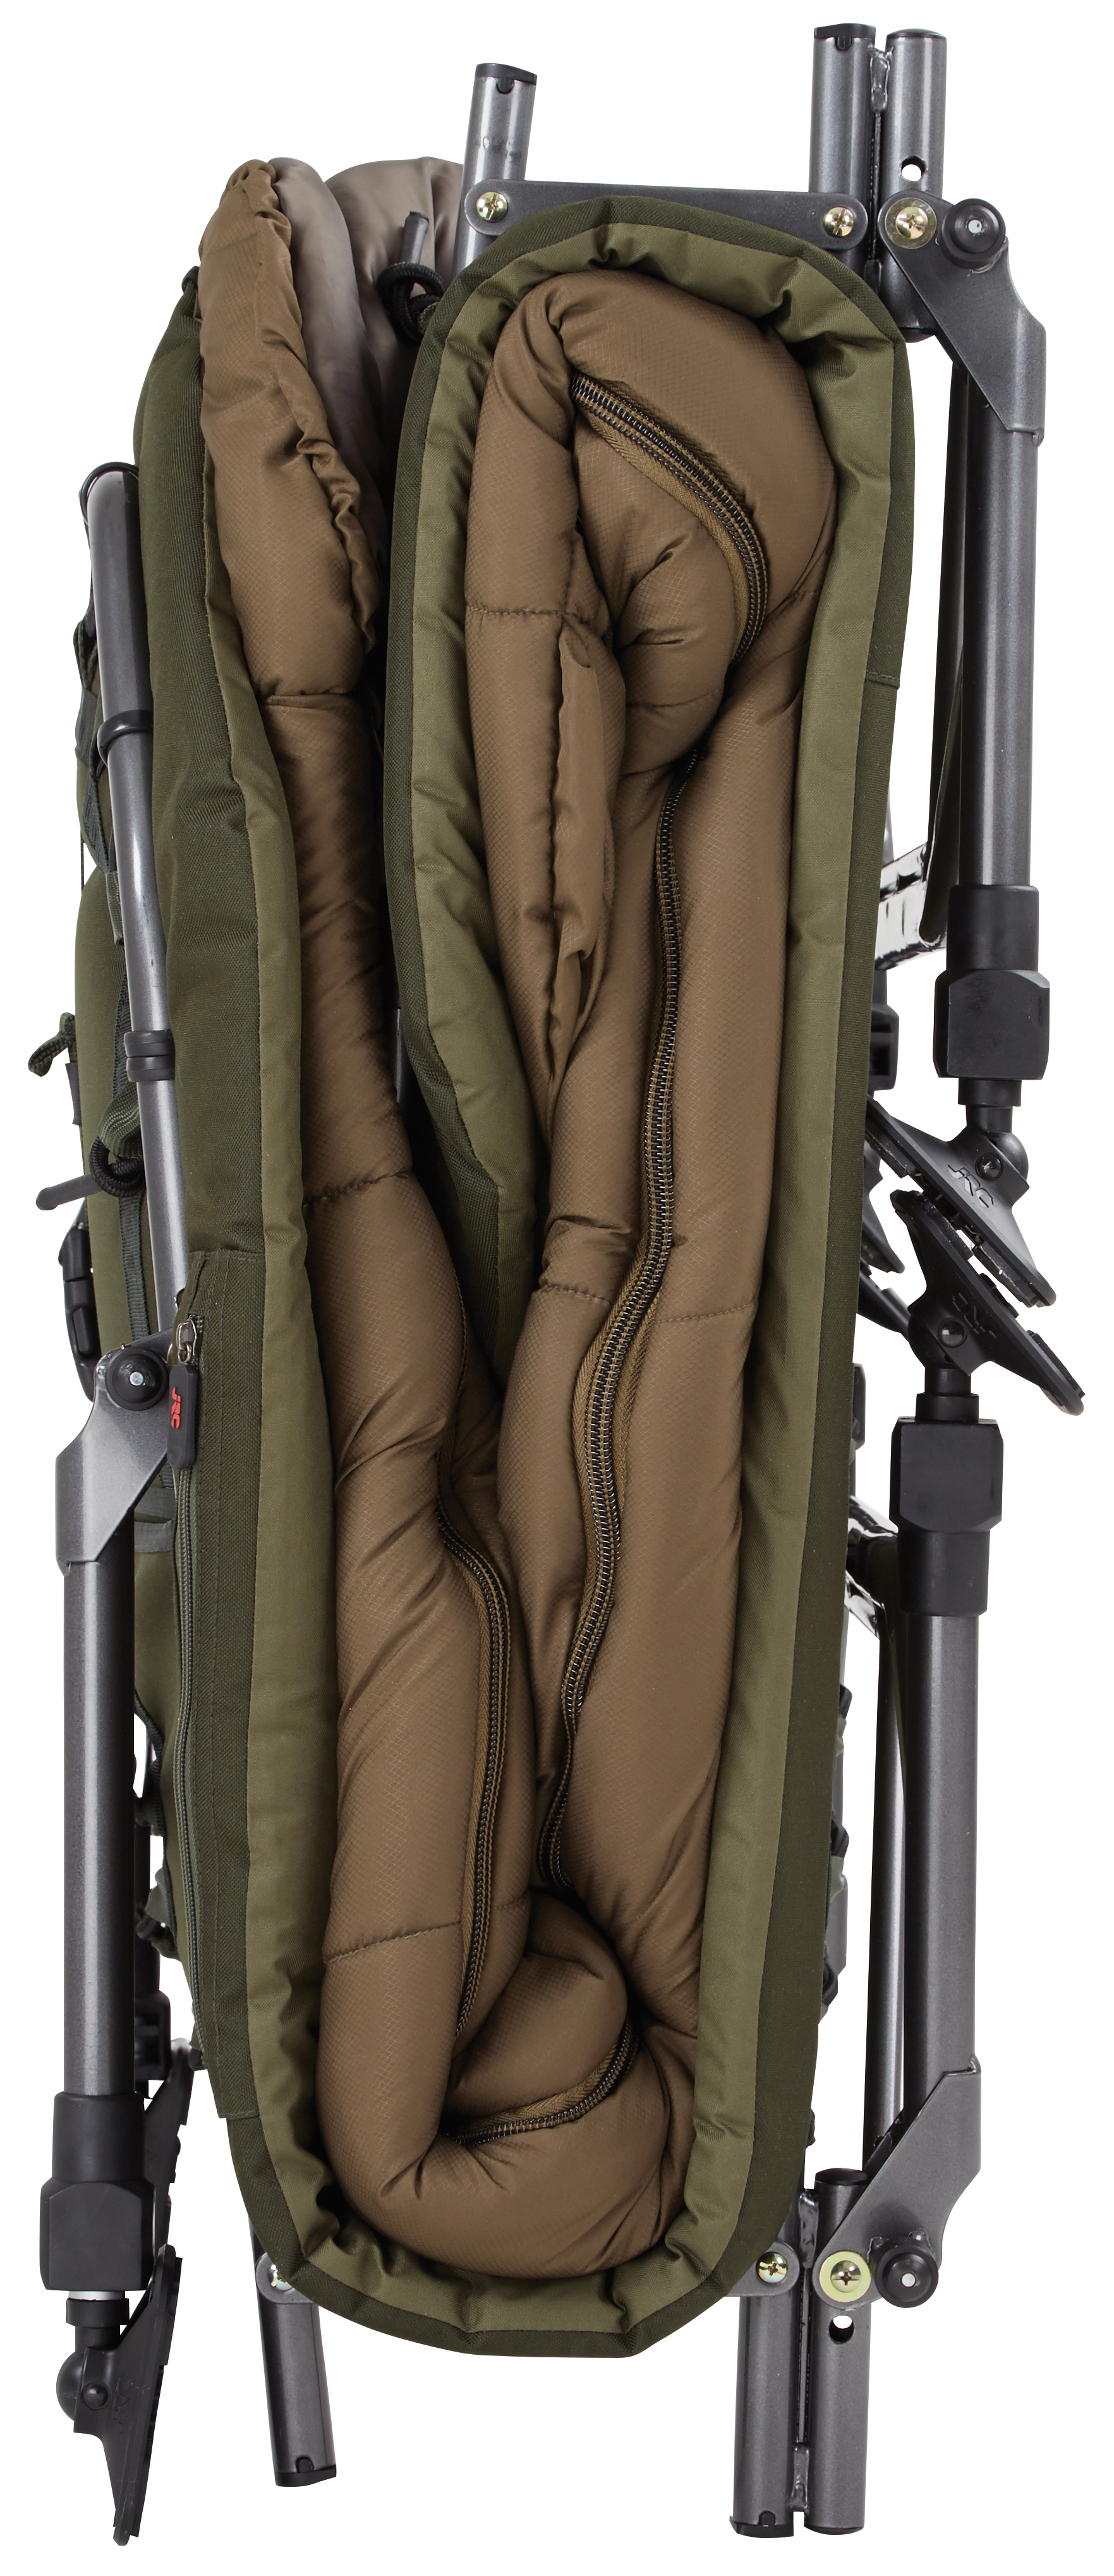 JRC Cocoon 2G Levelbed Fishing Bedchair XL Size 1378290